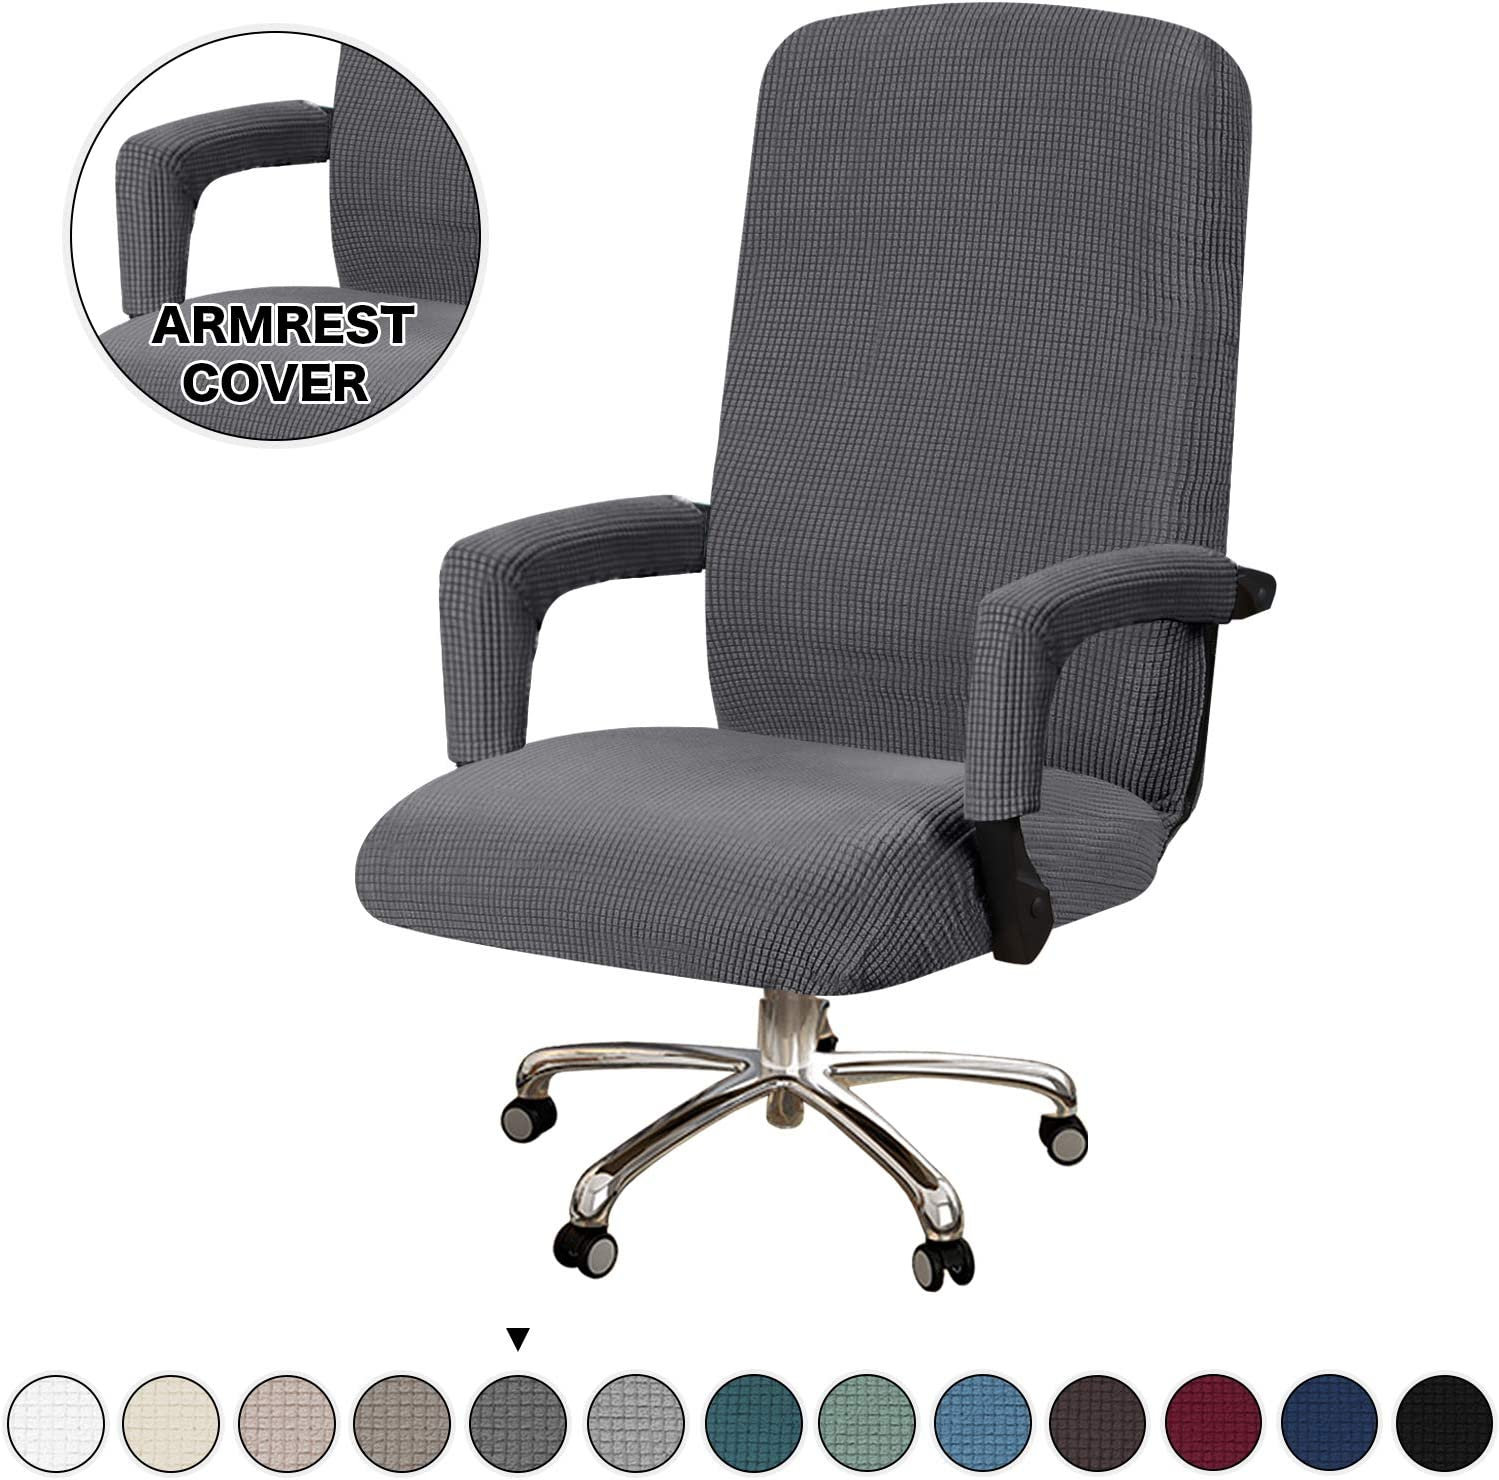 Turquoize Office Chair Cover Large Computer Chair Cover with Armrest Cover Stretch Washable Computer Chair Slipcovers for Universal Rotating Boss Chair Machine Washable, Large, Gray